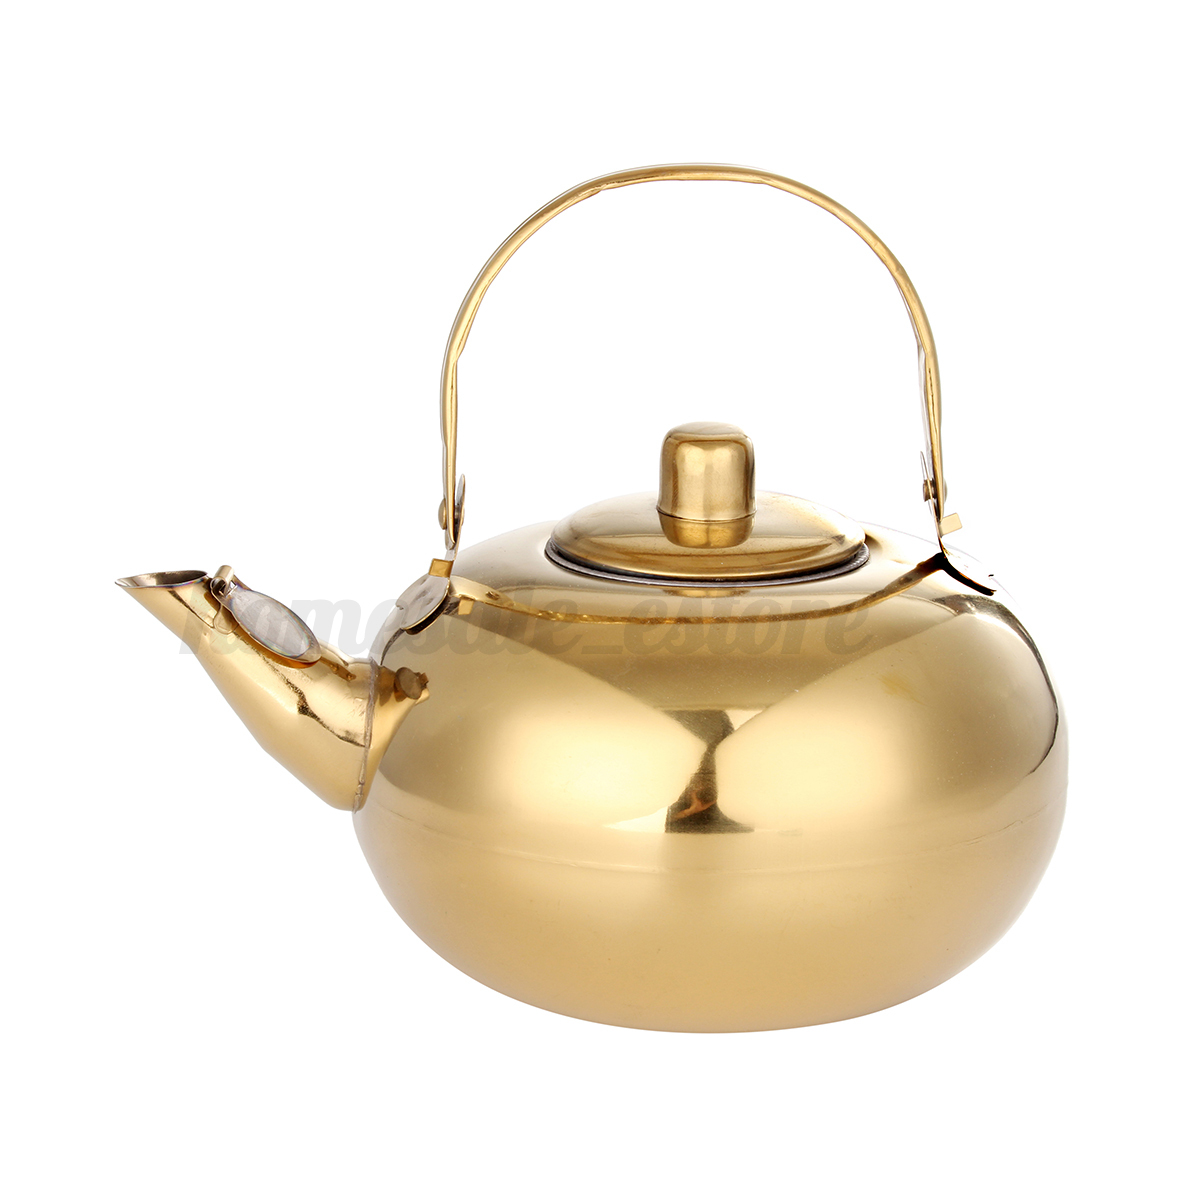 Tea Kettle With Strainer Gold Stainless Steel Tea Pot Kettle Tea Strainer Set